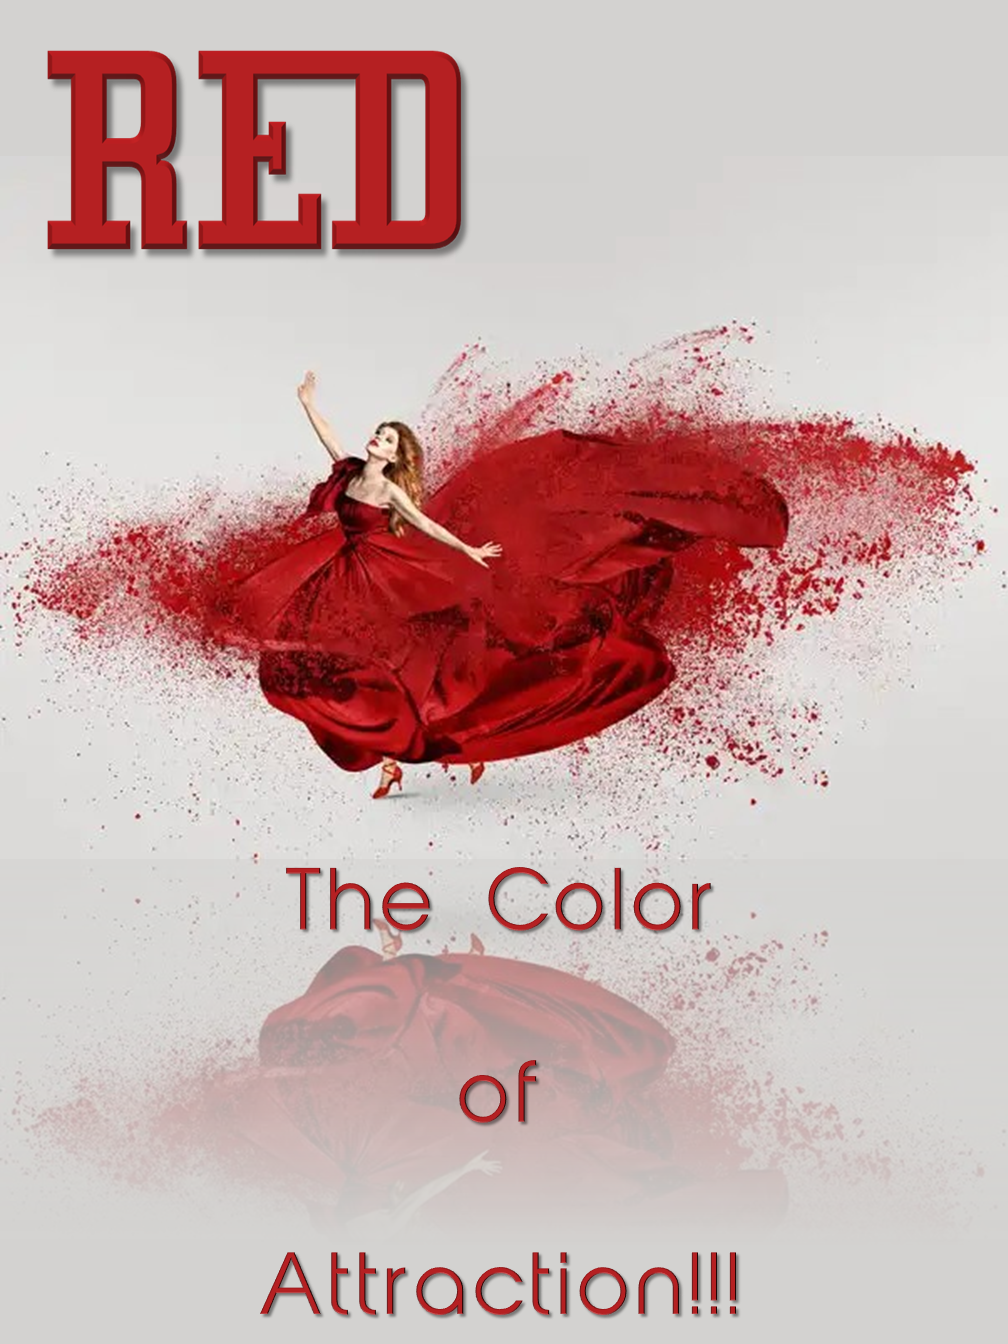 RED! The color of Attraction